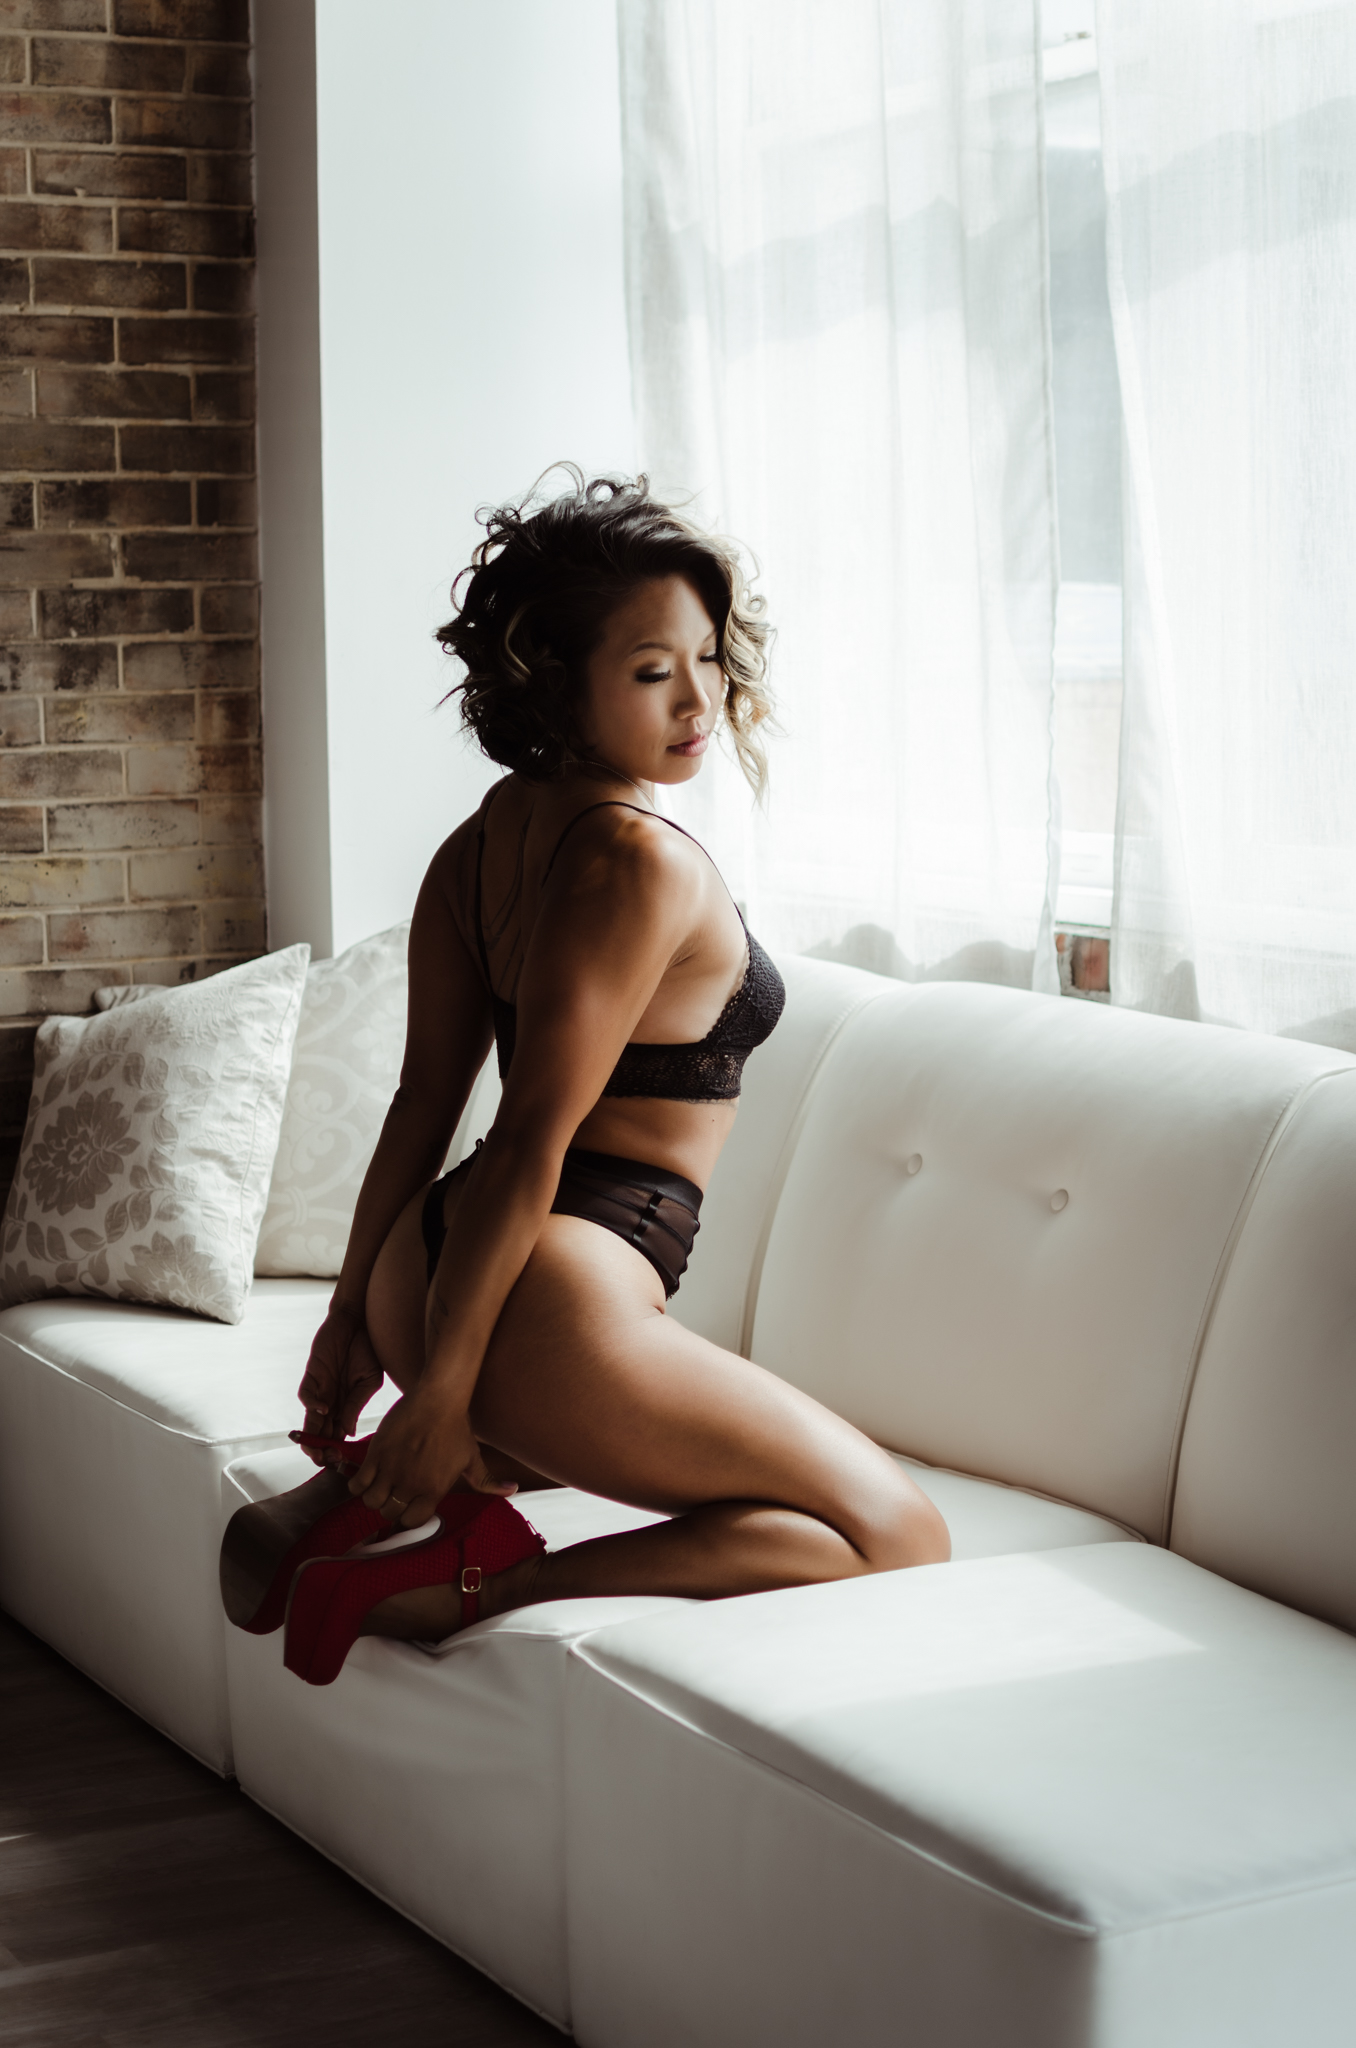 NC boudoir photography experience in belle vue wilmington venue with black lace lingerie by Victoria Secret by Amandamarie Gillen Photography Wilmington NC photographer tushie tuesday butt lifting pose on chair by window with natural light and red heels